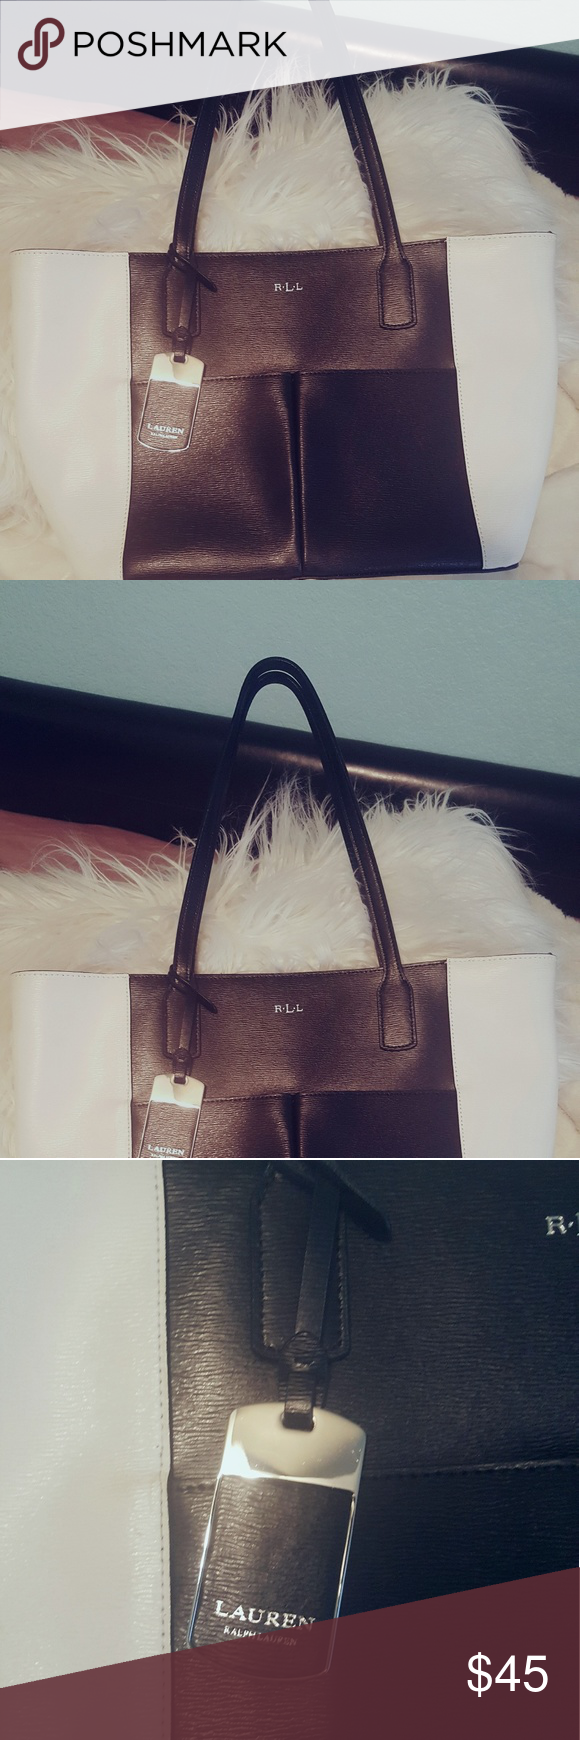 676bb53fb00 Ralph Lauren Purse Black and white and comes with a protective bag. Looks  brand new Ralph Lauren RRL Bags Totes